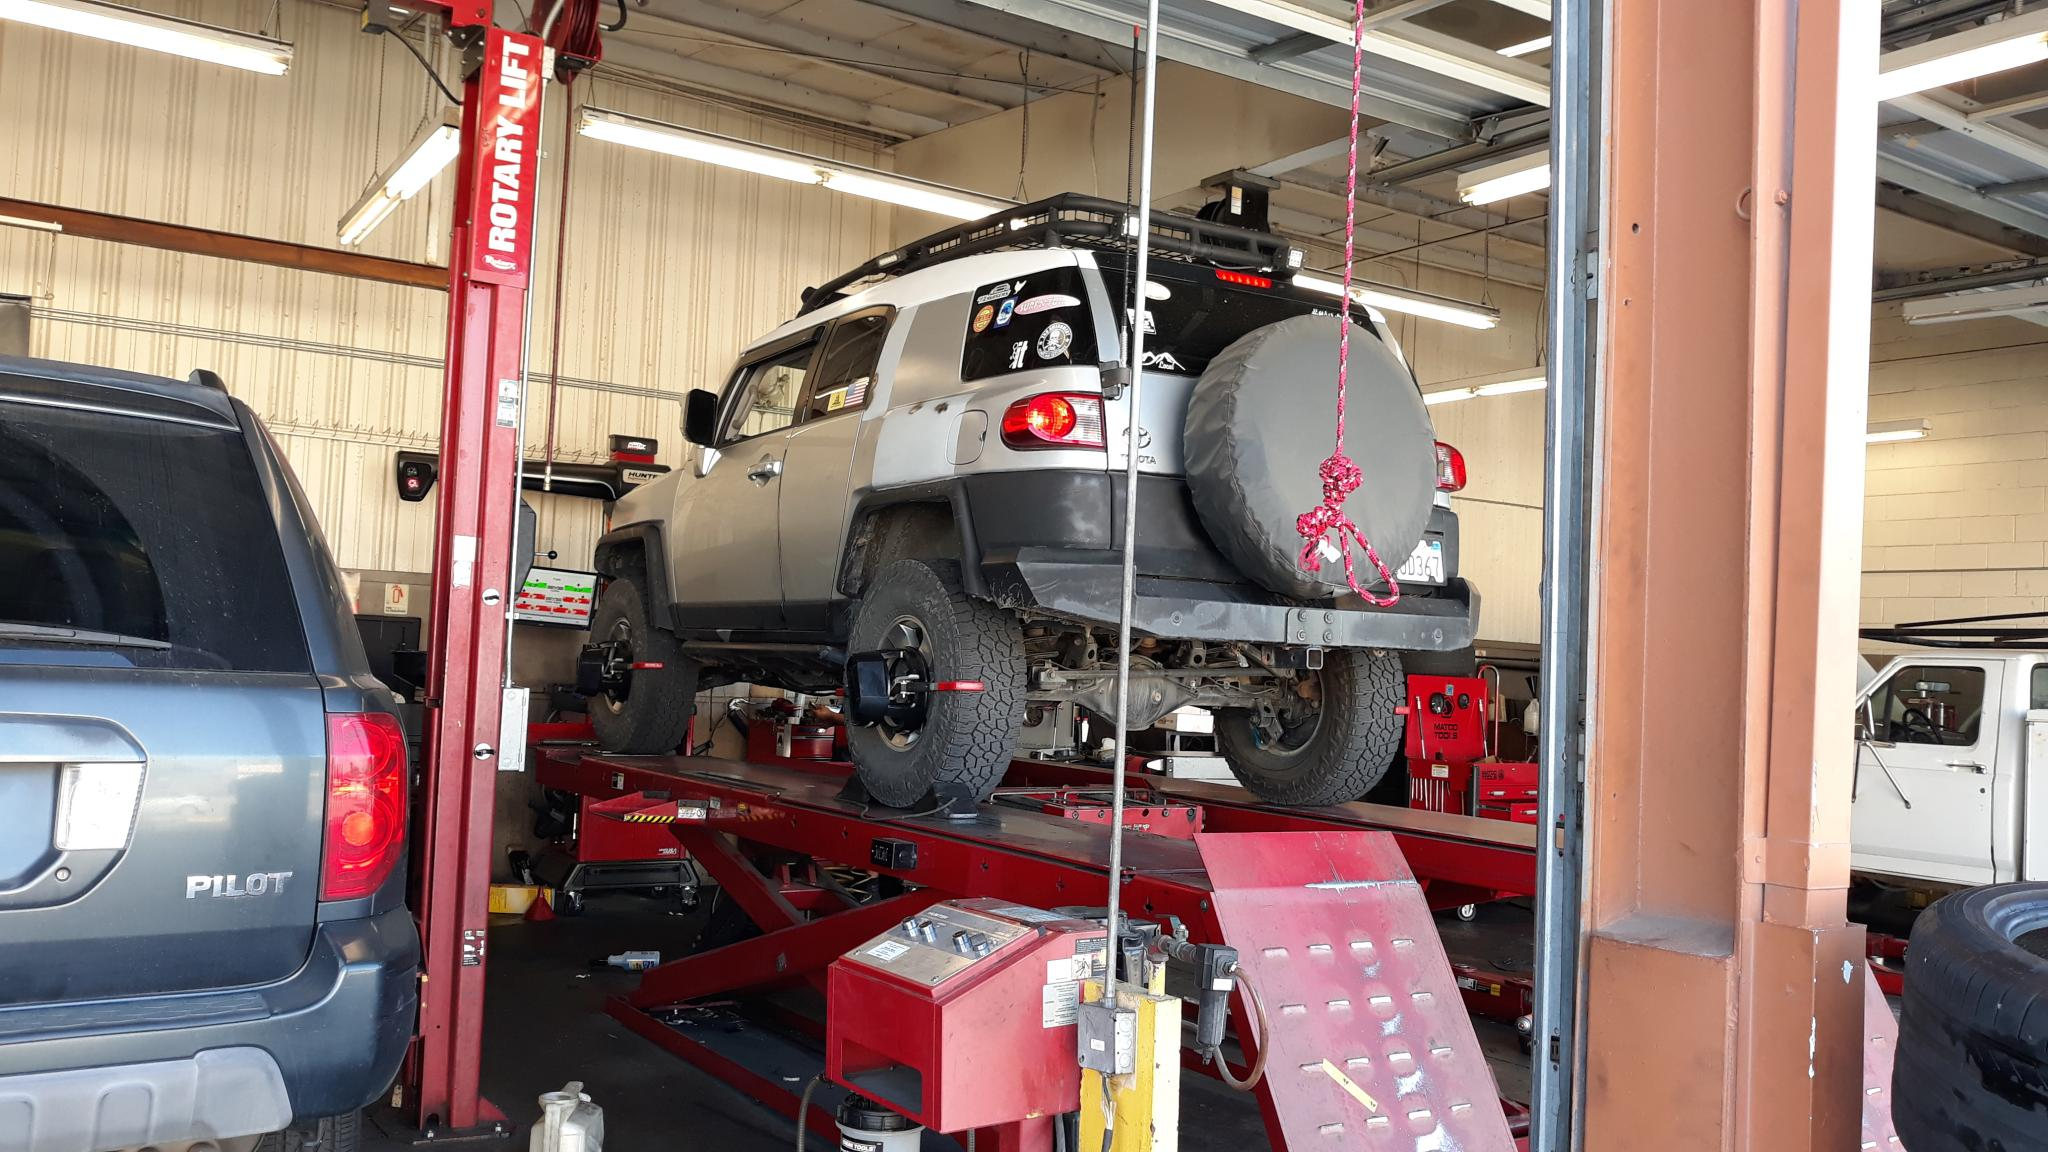 What did you do TO your FJ Cruiser TODAY?-20190612_081244.jpg